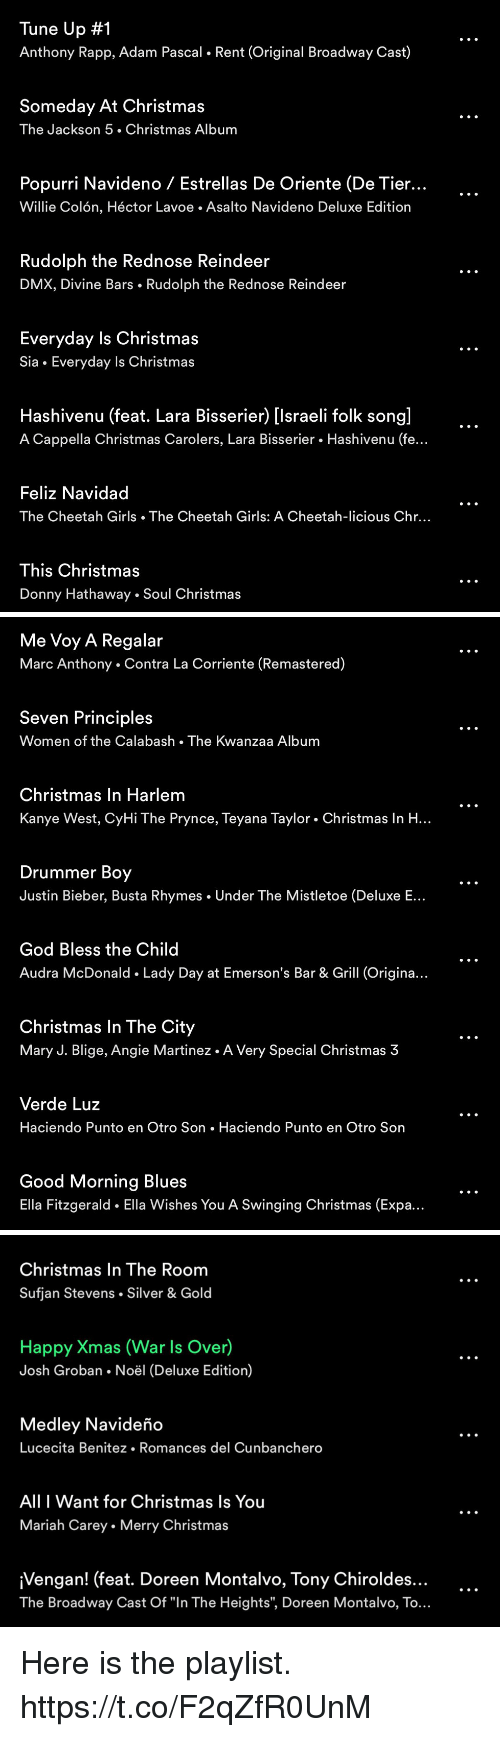 "Busta Rhymes, Christmas, and Dmx: Tune Up #1  Anthony Rapp, Adam Pascal. Rent (Original Broadway Cast)  Someday At Christmas  The Jackson 5. Christmas Album  Popurri Navideno / Estrellas De Oriente (De Tier...  Willie Colón, Héctor Lavoe. Asalto Navideno Deluxe Edition  Rudolph the Rednose Reindeer  DMX, Divine Bars . Rudolph the Rednose Reindeer  Everyday Is Christmas  Sia . Everyday Is Christmas  Hashivenu (feat. Lara Bisserier) [lsraeli folk song]  A Cappella Christmas Carolers, Lara Bisserier . Hashivenu (fe..  Feliz Navidad  The Cheetah Girls The Cheetah Girls: A Cheetah-licious Chr...  This Christmas  Donny Hathaway Soul Christmas   Me Voy A Regalar  Marc Anthony Contra La Corriente (Remastered)  Seven Principles  Women of the Calabash The Kwanzaa Album  Christmas In Harlem  Kanye West, CyHi The Prynce, Teyana Taylor . Christmas In H...  Drummer Boy  Justin Bieber, Busta Rhymes Under The Mistletoe (Deluxe E  God Bless the Child  Audra McDonald Lady Day at Emerson's Bar & Grill (Origina..  Christmas In The City  Mary J. Blige, Angie Martinez. A Very Special Christmas 3  Verde Luz  Haciendo Punto en Otro Son. Haciendo Punto en Otro Son  Good Morning Blues  Ella Fitzgerald Ella Wishes You A Swinging Christmas (Expa.   Christmas In The Room  Sufjan Stevens . Silver & Gold  Happy Xmas (War Is Over)  Josh Groban Noël (Deluxe Edition)  Medley Navideño  Lucecita Benitez. Romances del Cunbanchero  All I Want for Christmas ls You  Mariah Carey . Merry Christmas  ¡Vengan! (feat. Doreen Montalvo, Tony Chiroldes...  The Broadway Cast Of ""In The Heights"", Doreen Montalvo, To.. Here is the playlist. https://t.co/F2qZfR0UnM"